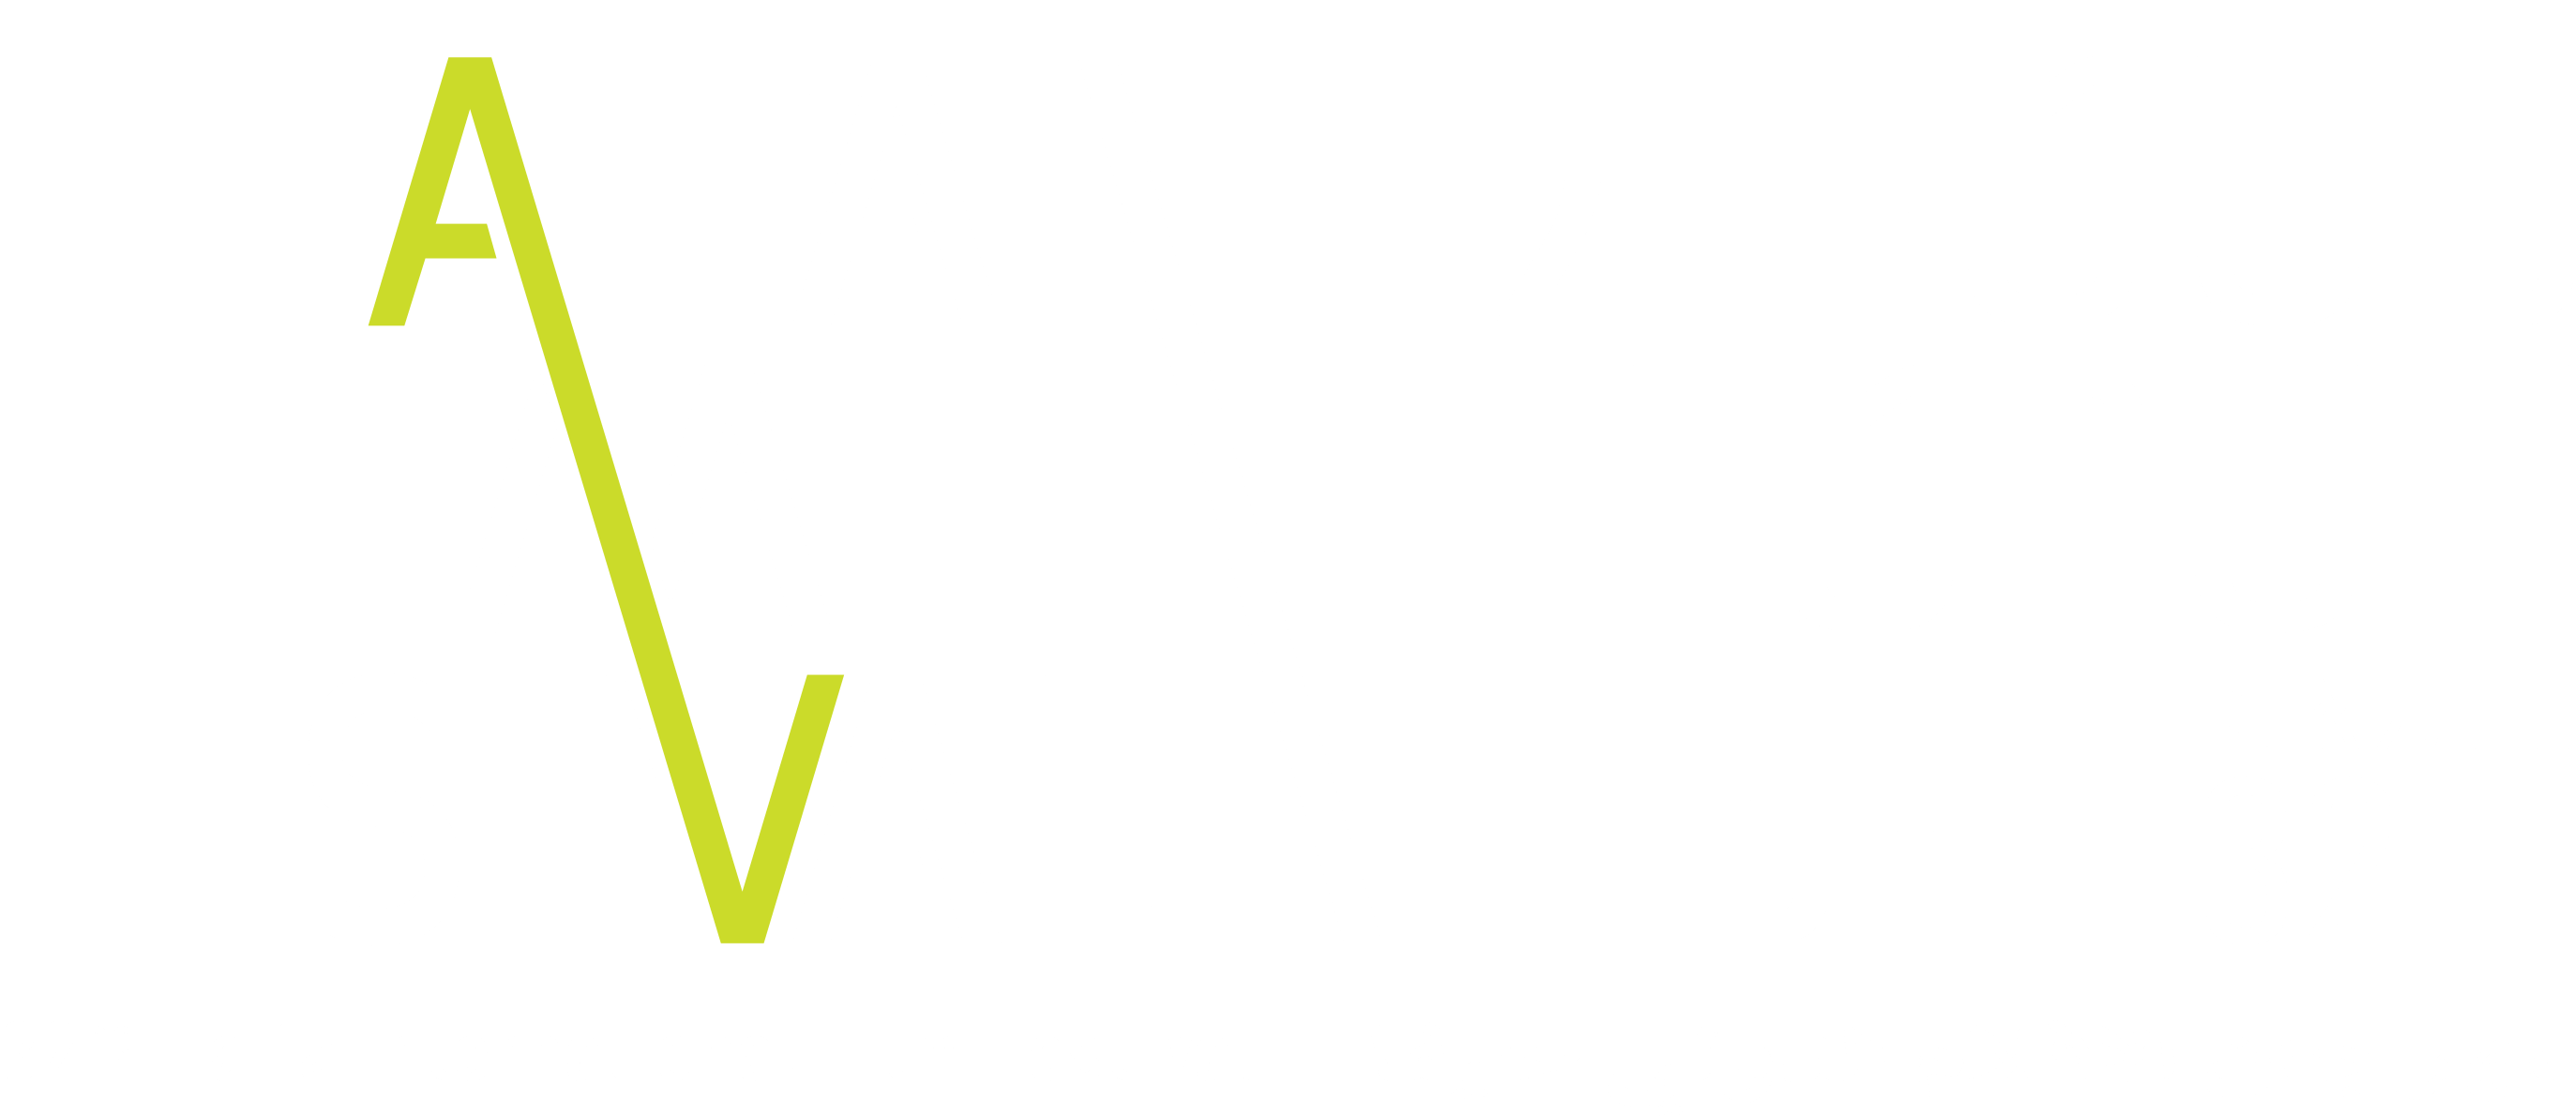 Haifa 31st International Film Festival